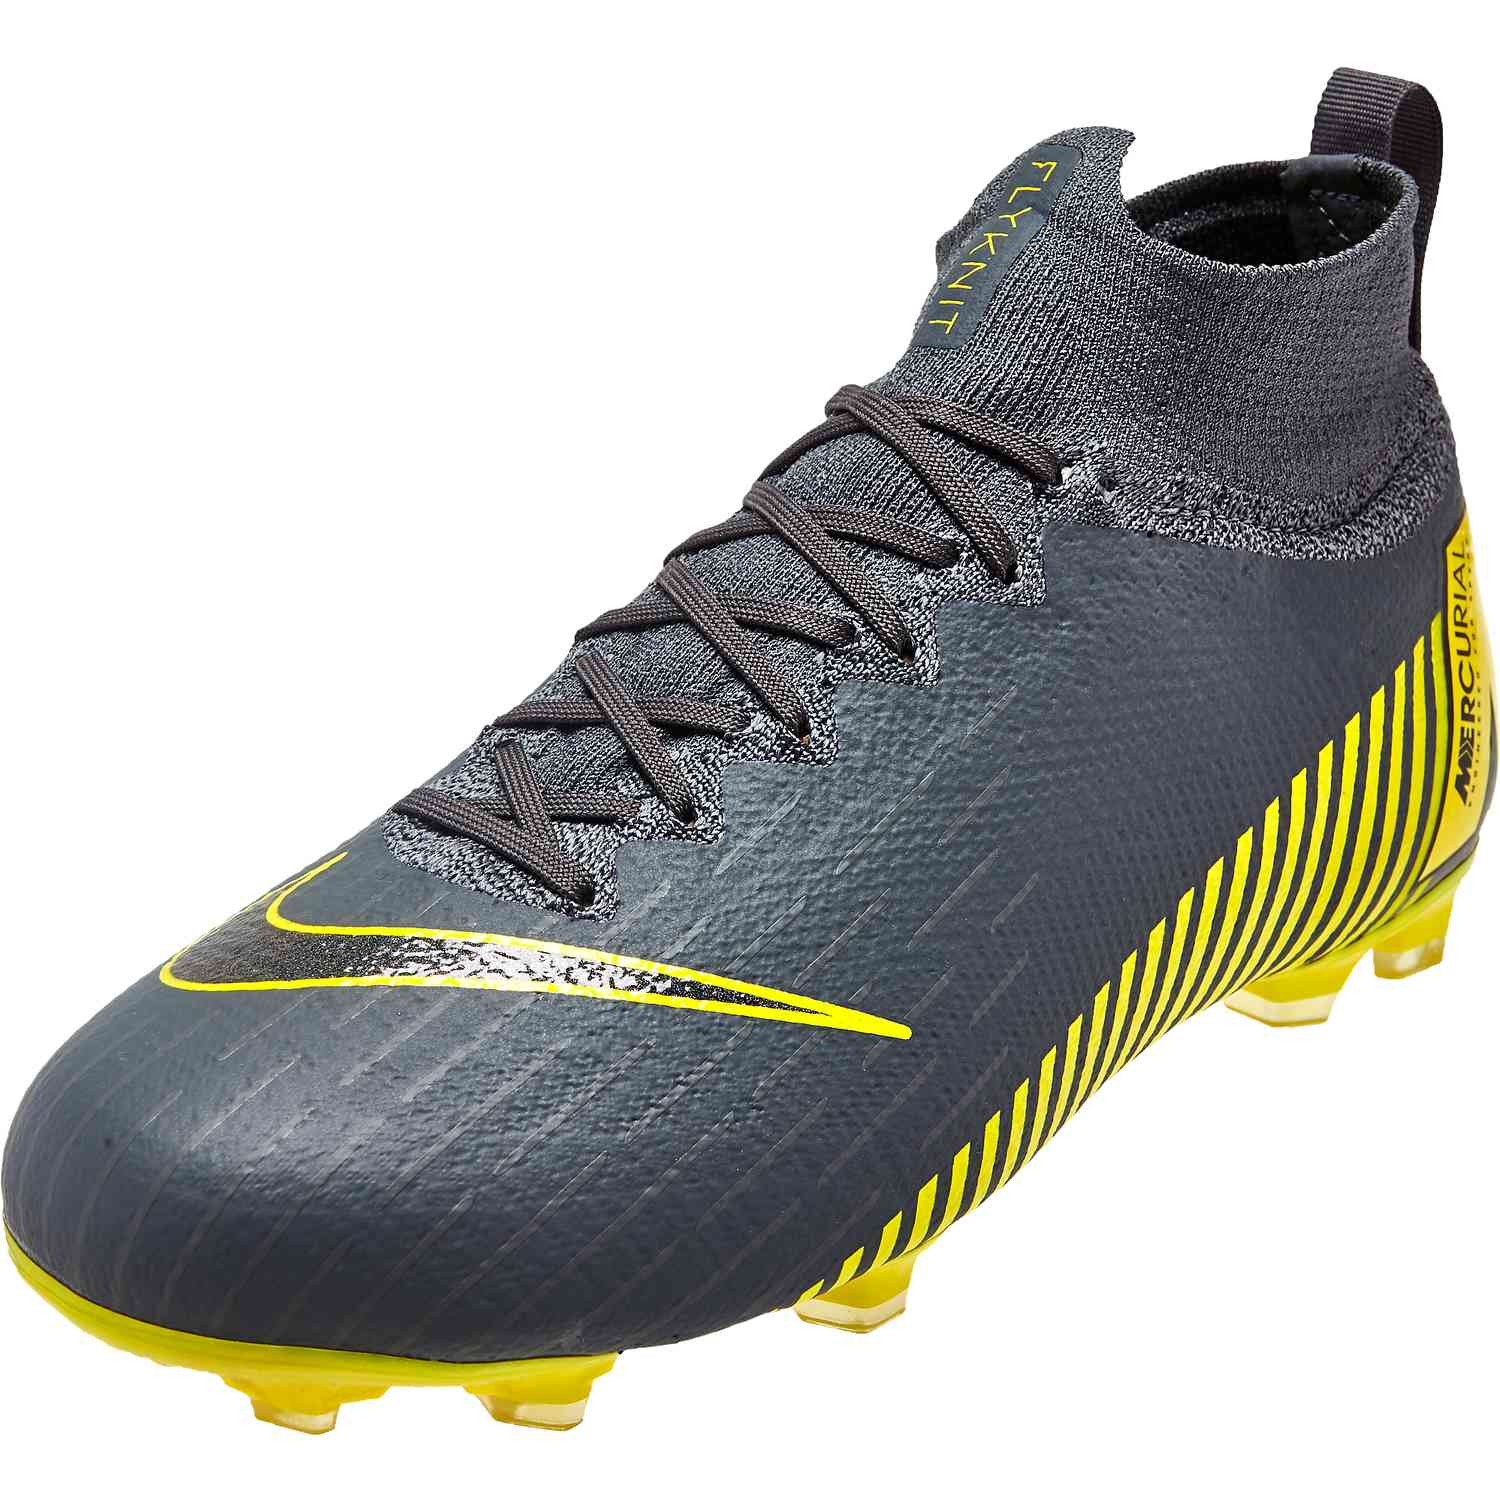 150269dfc9d Kids Nike Mercurial Superfly 6 Elite FG - Game Over - SoccerPro